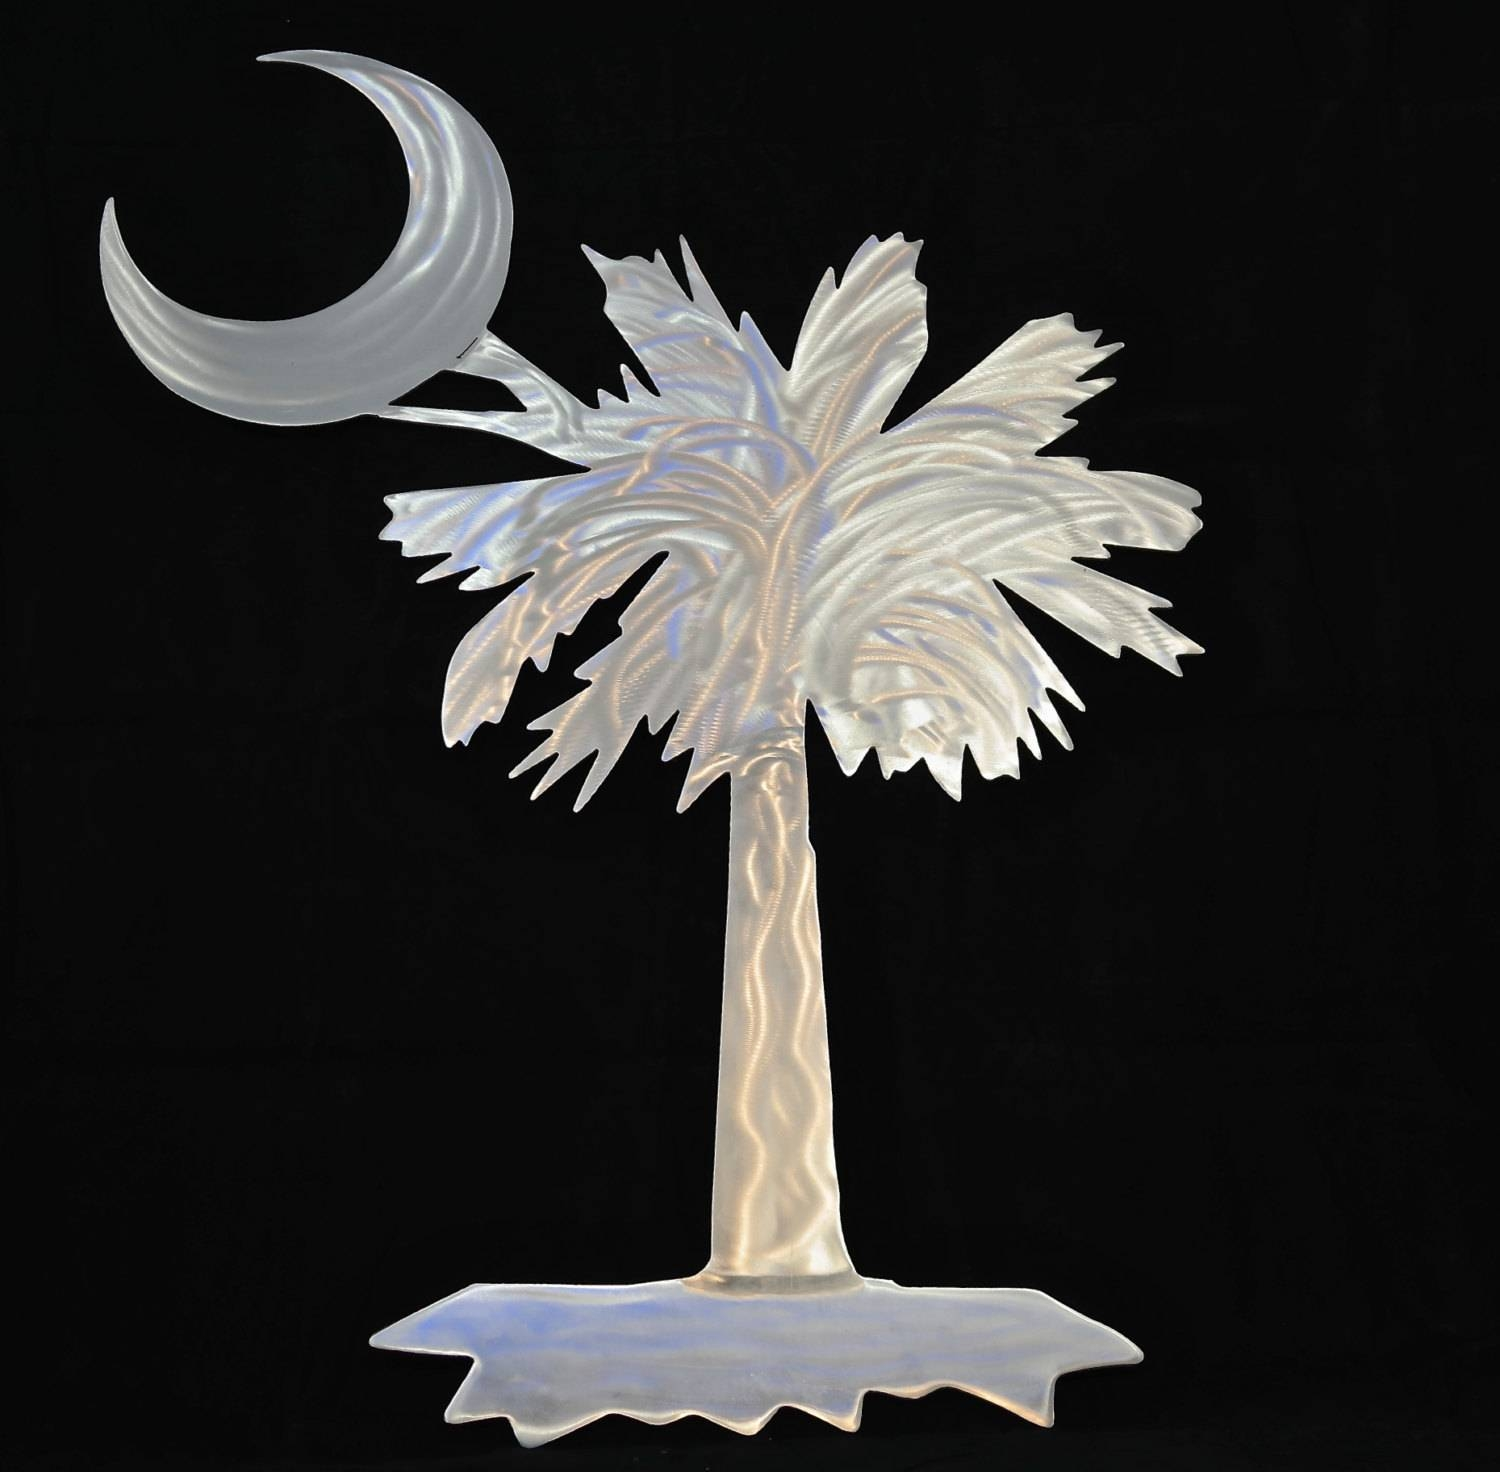 Outdoor Metal Wall Art Palmetto Tree Wall Art Palmetto Tree For Best And Newest Metal Wall Art Palm Trees (View 12 of 20)